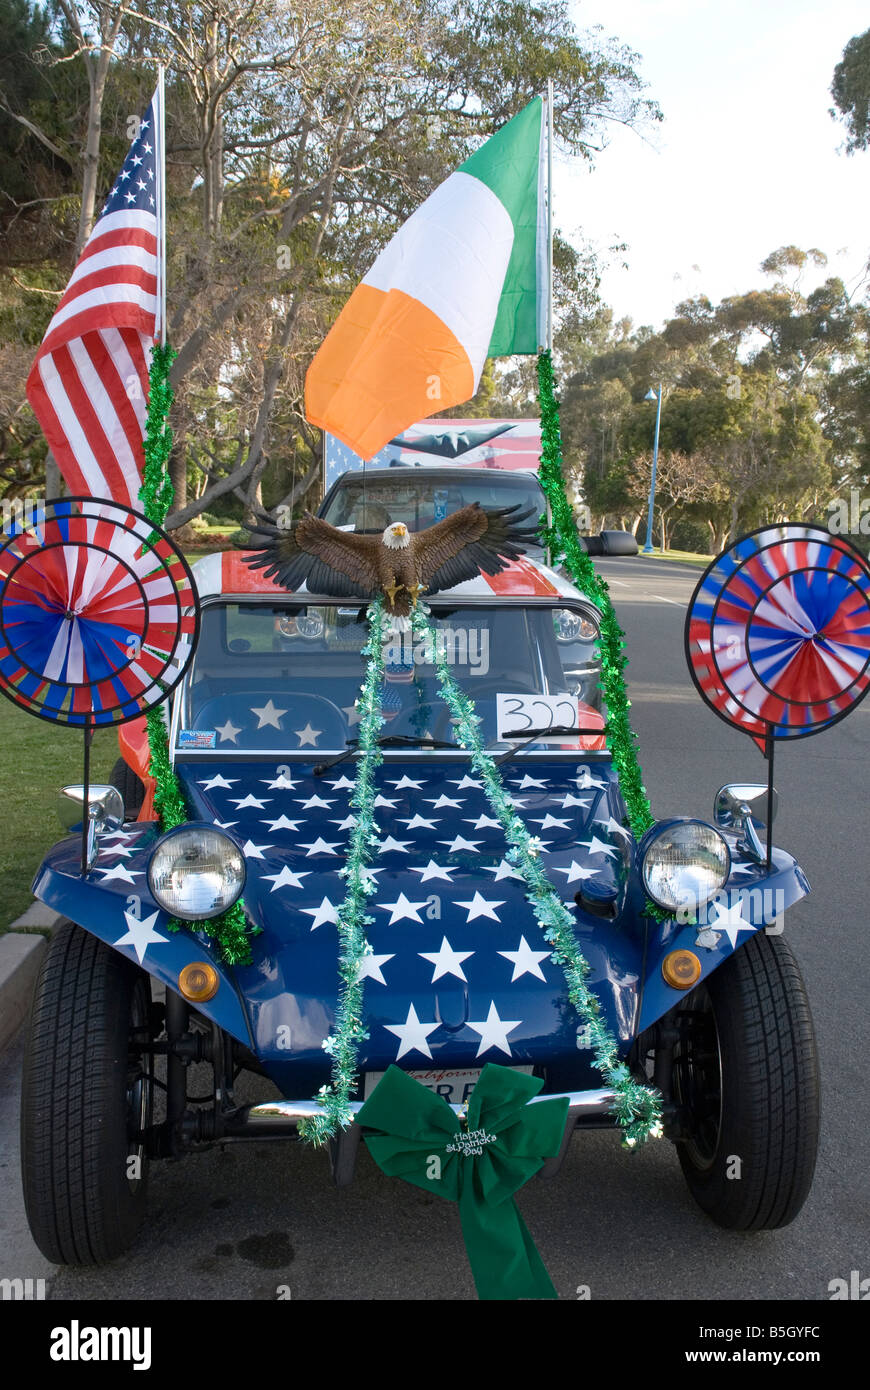 gaily decorated car at a St Patricks Day parade. - Stock Image